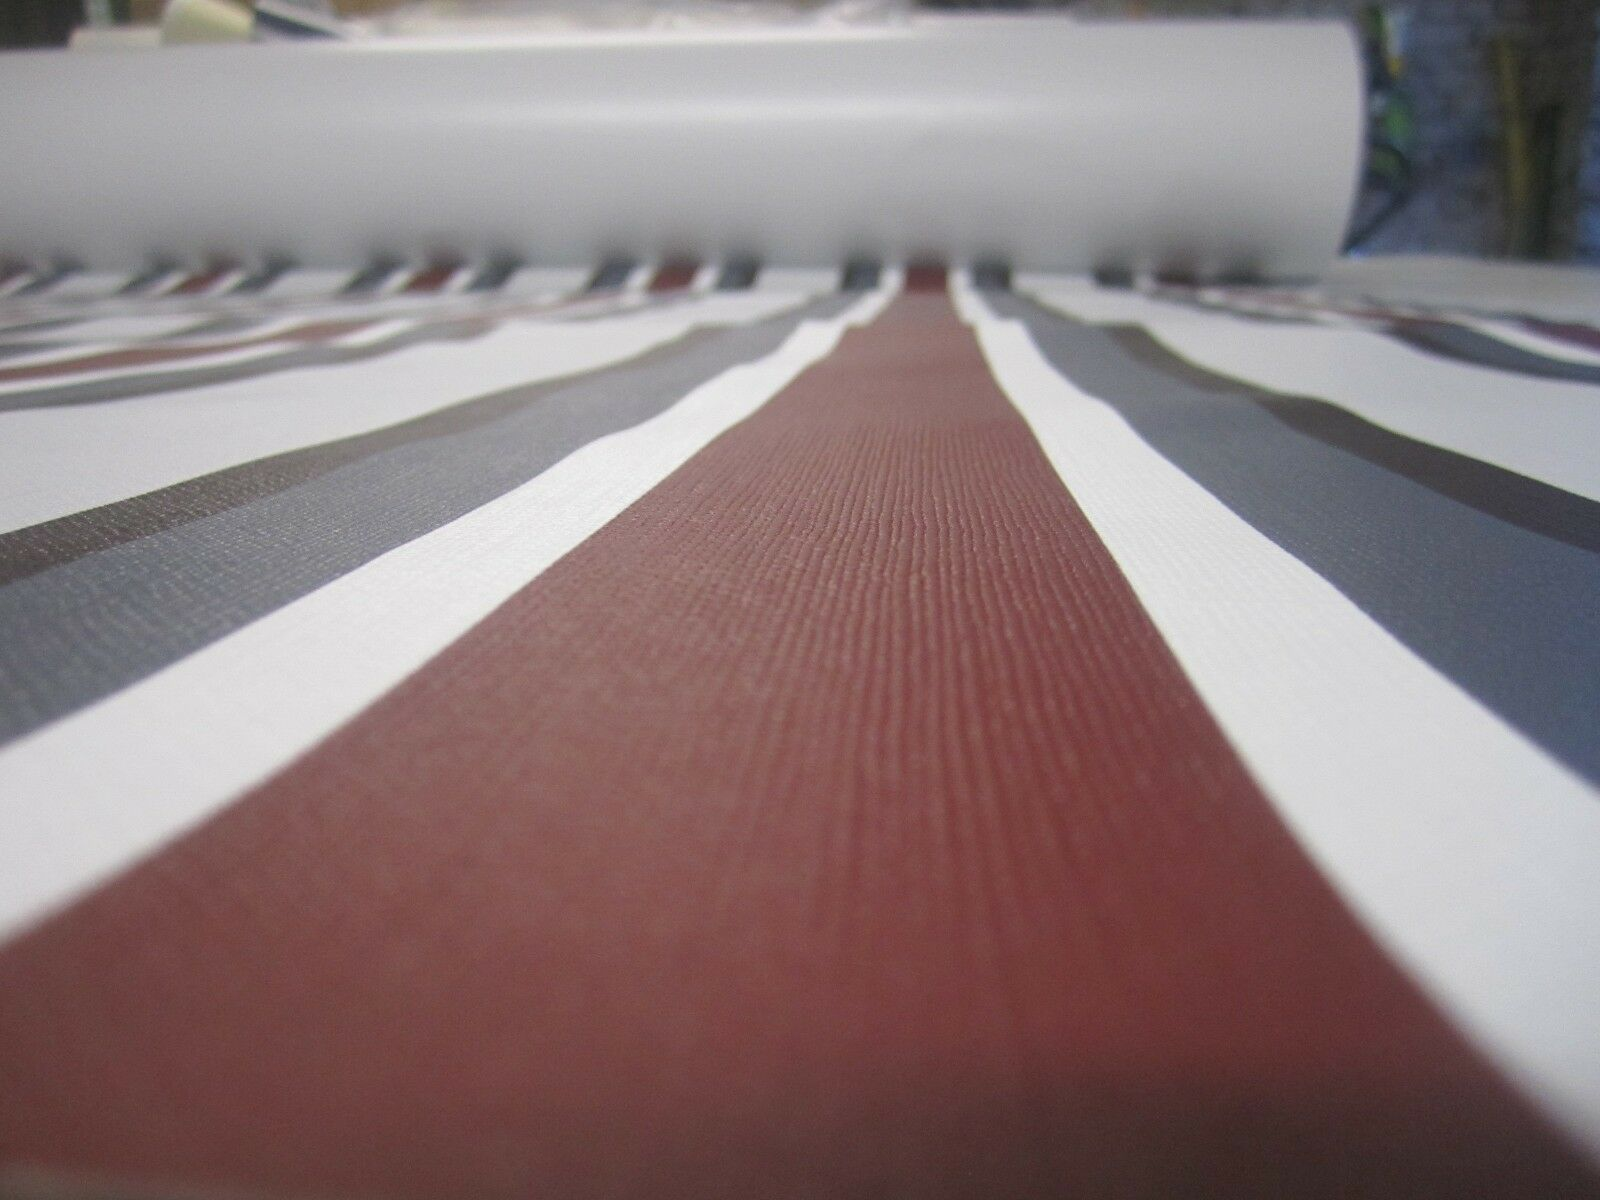 Awning Plane in 660 G/M ² Width ROT Valmex 2.70 H 2.70 Valmex x L up to 4.80 Meter d08cde